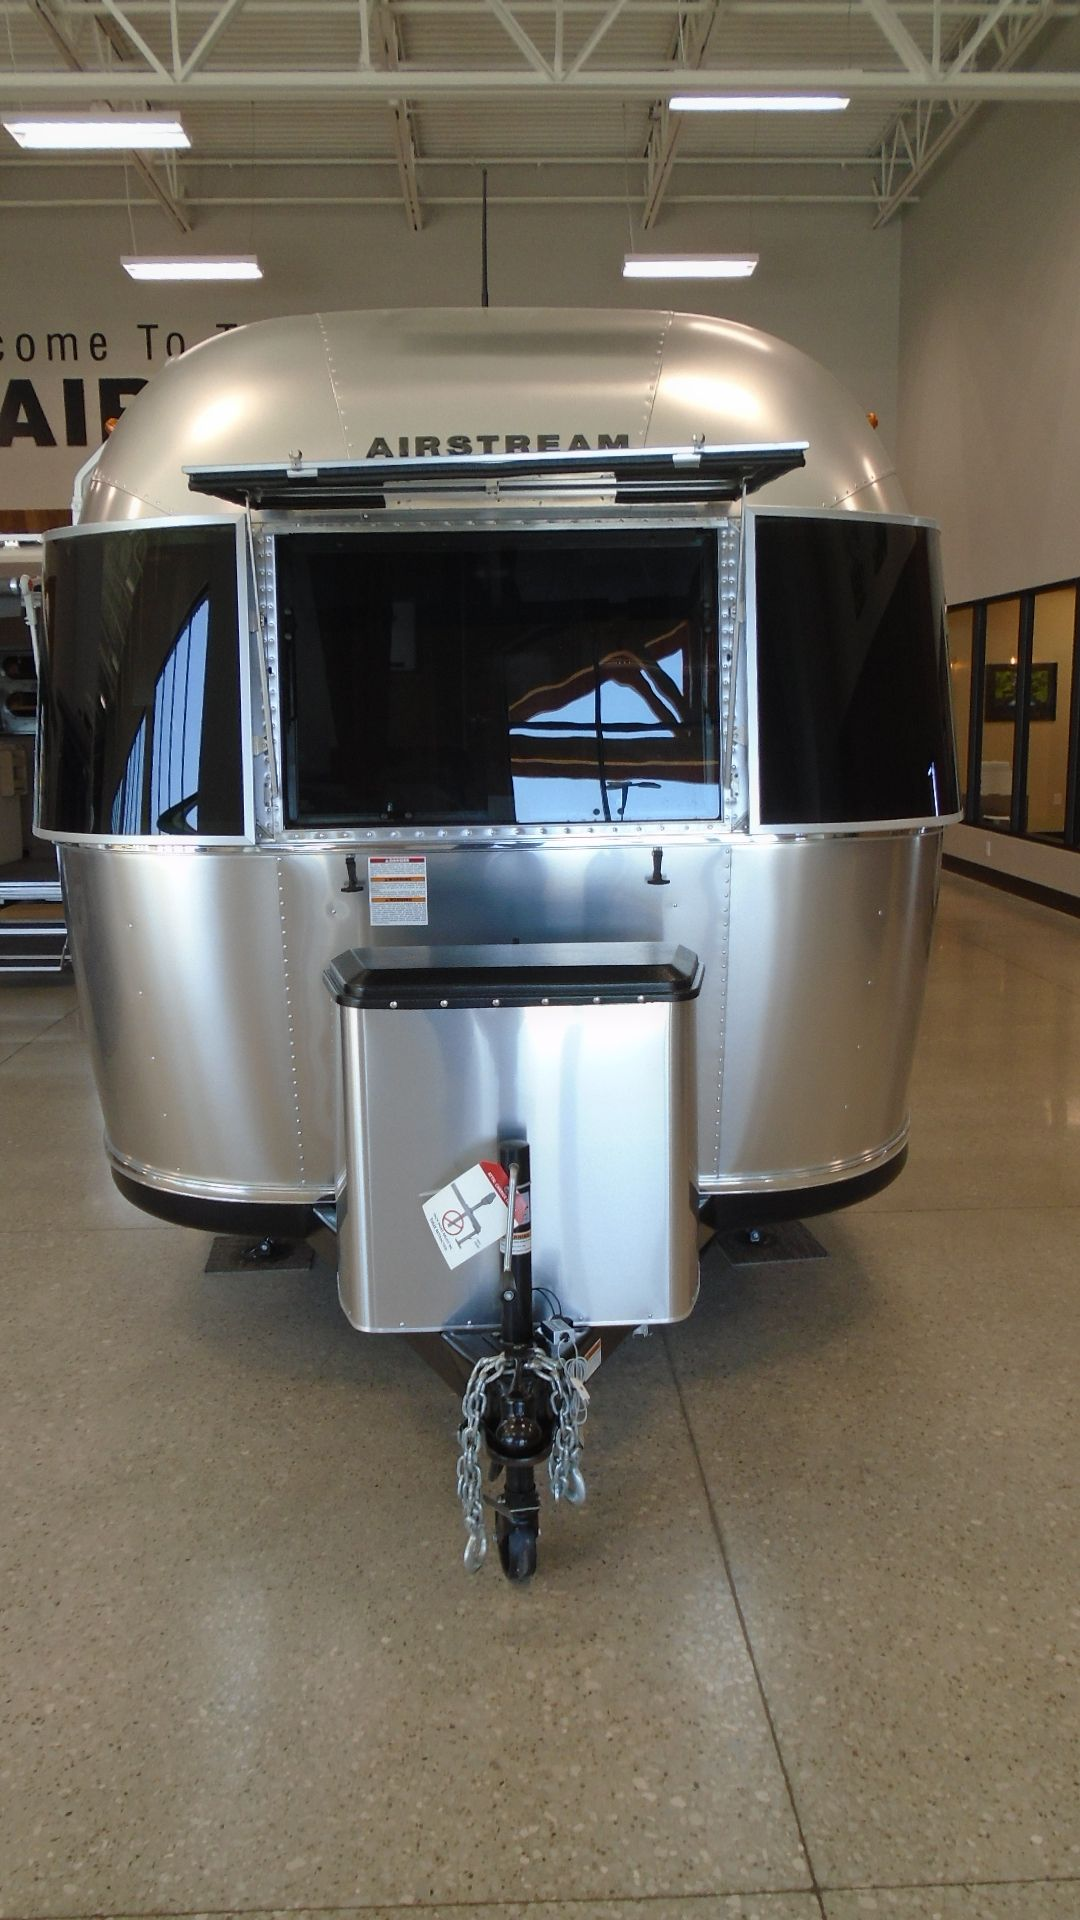 Airstream Airstream, Rv campers for sale, Campers for sale